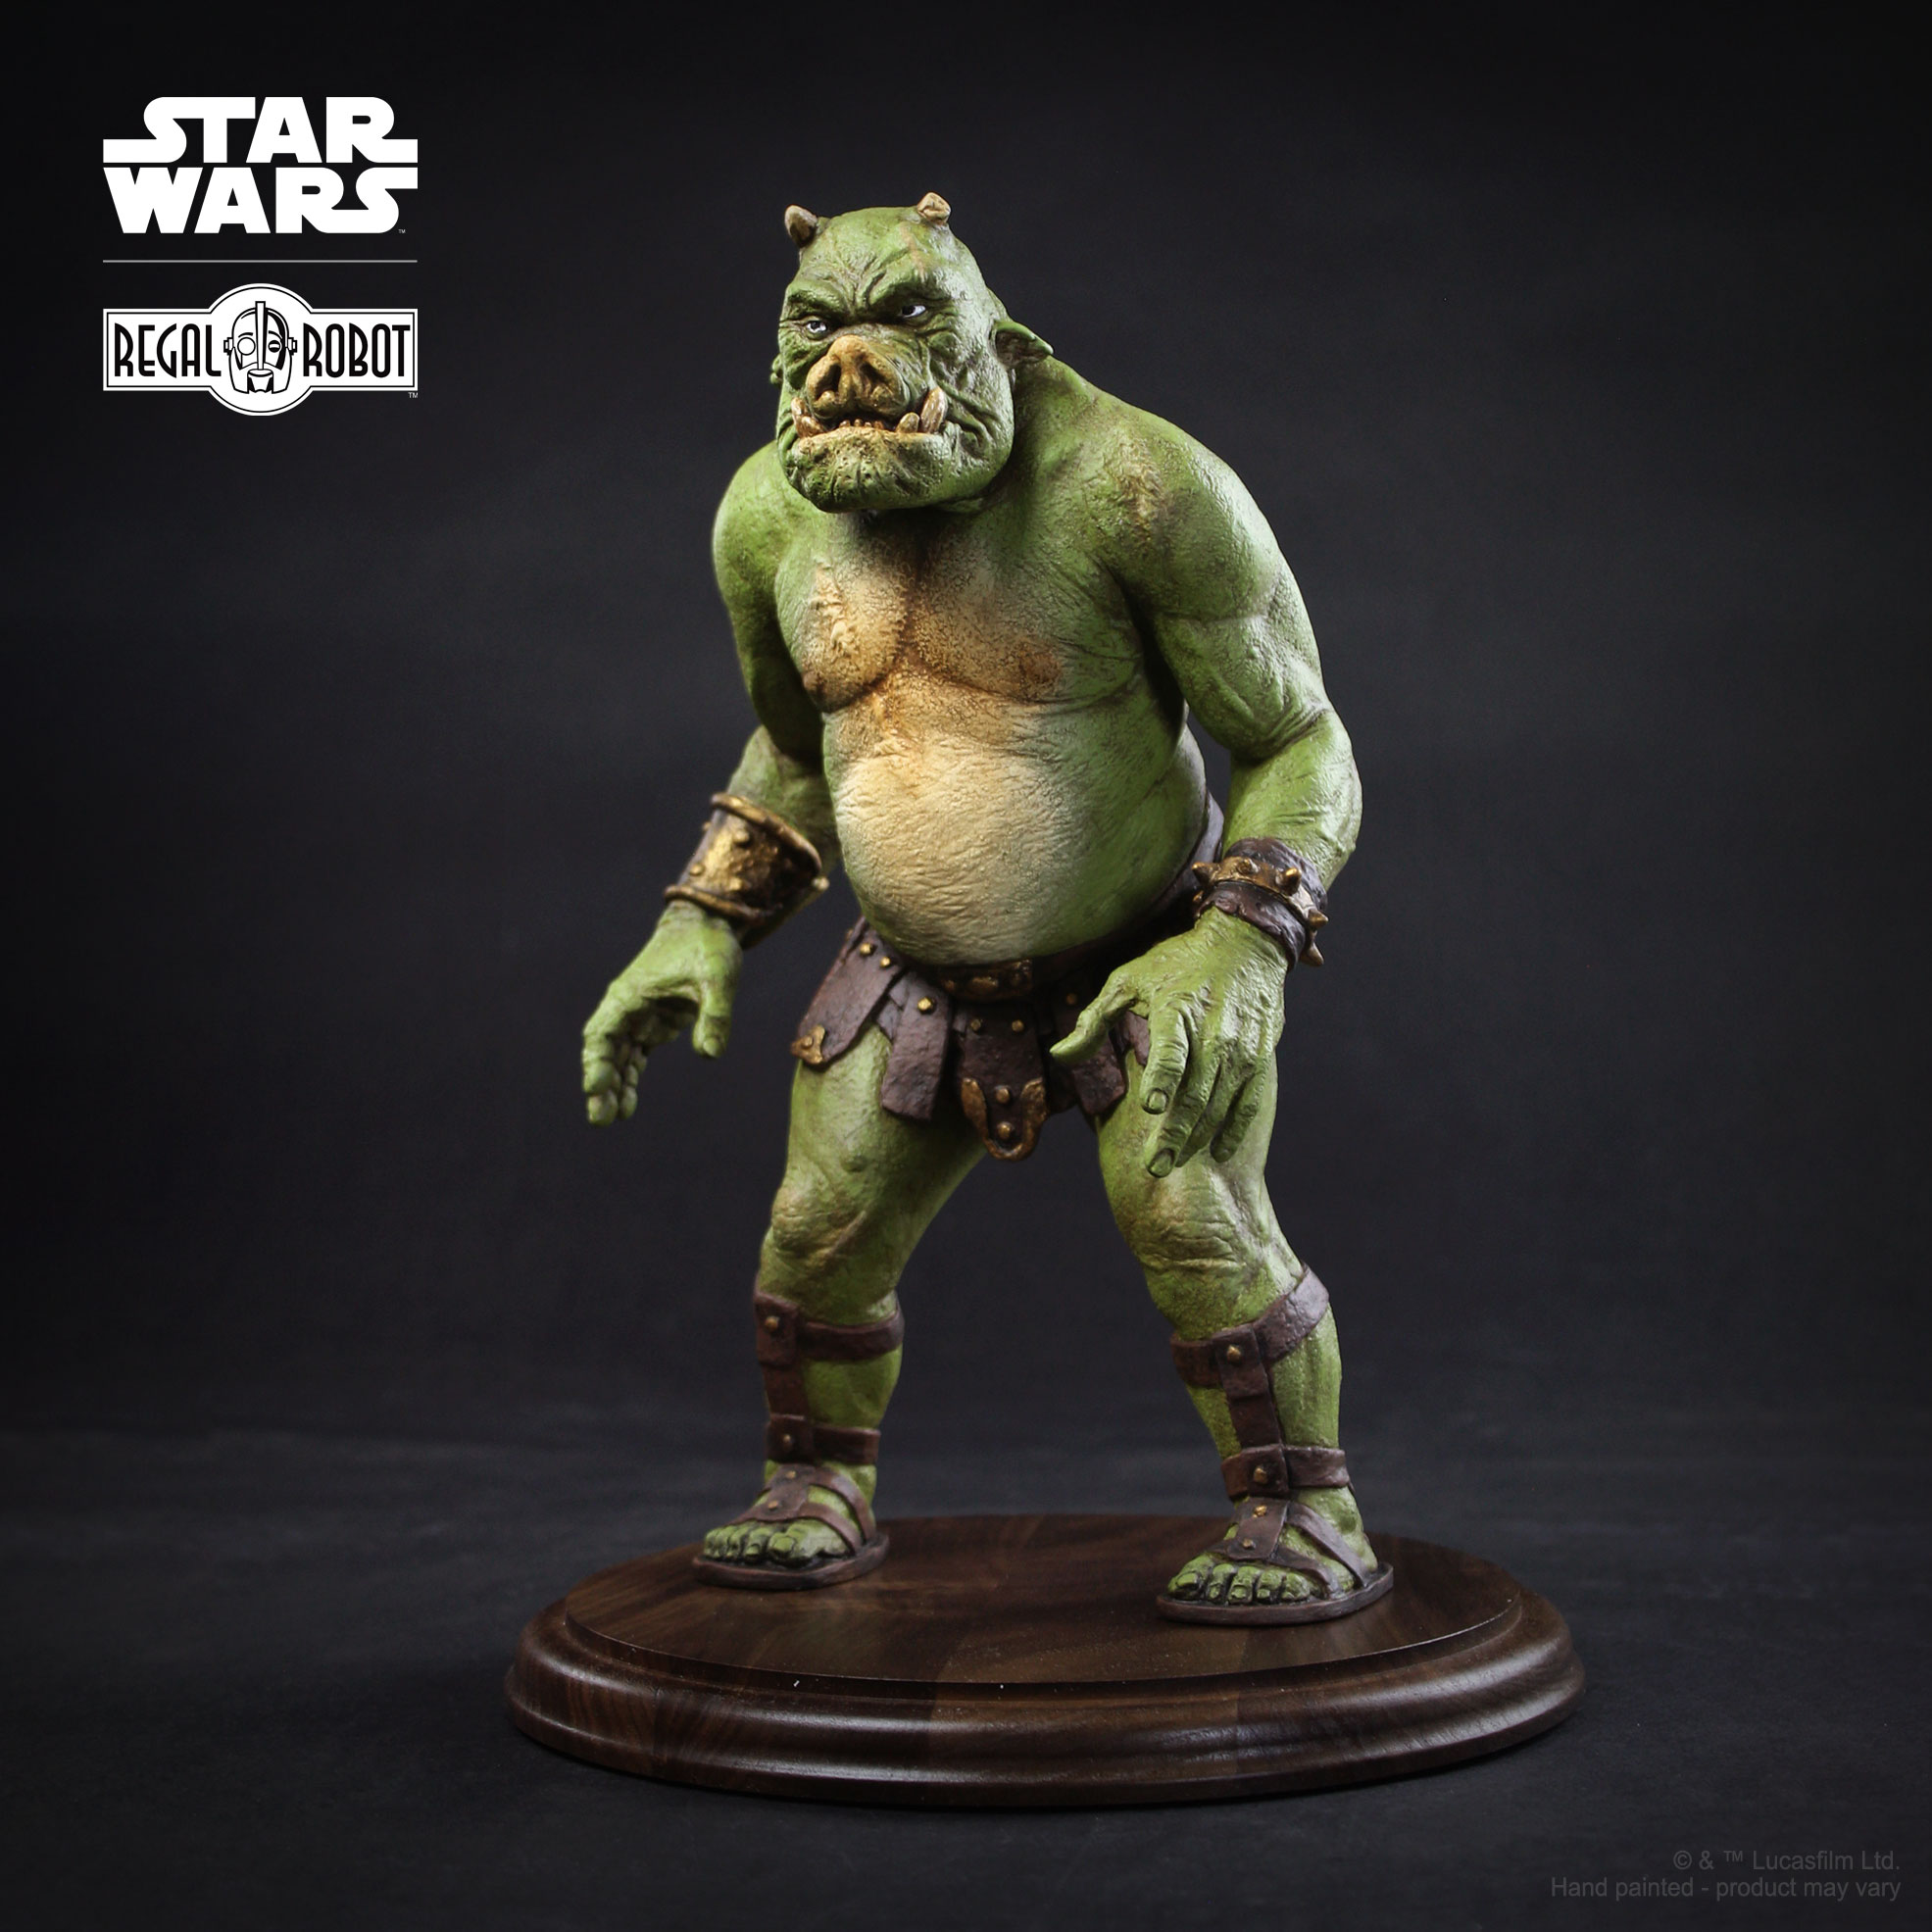 Gamorrean guard Star Wars statue, about 1/6th scale